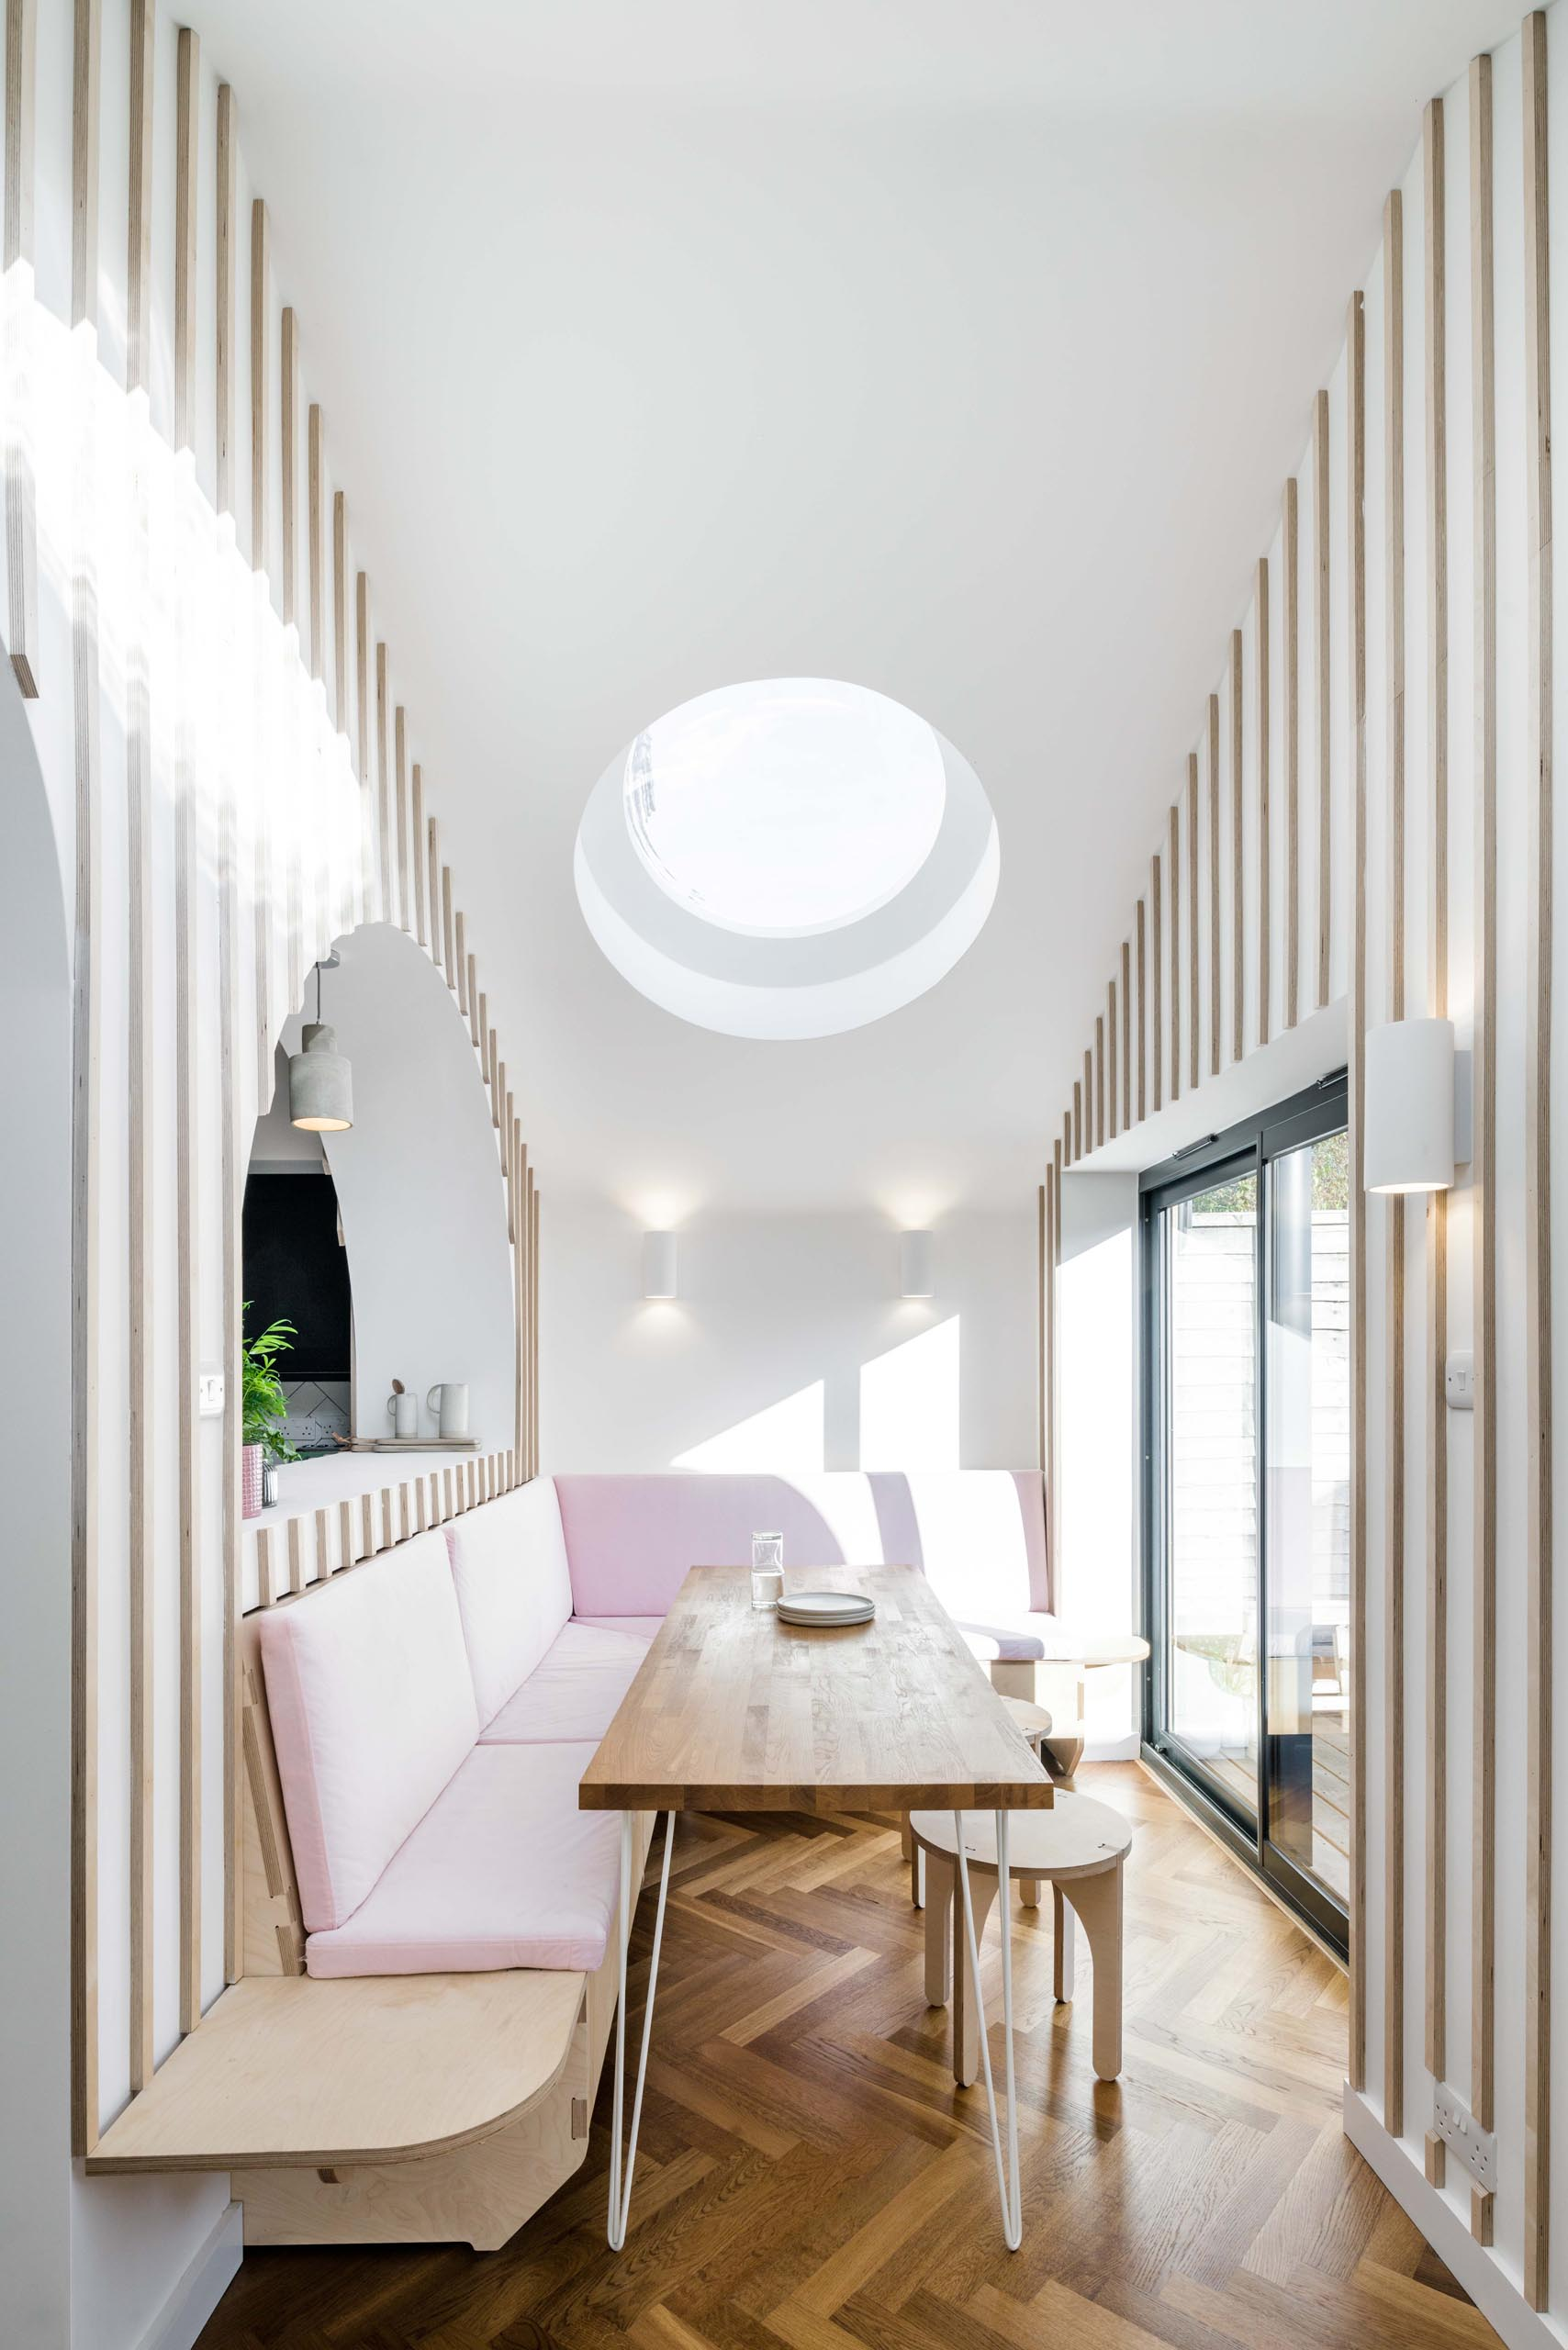 A modern dining area that has built-in banquettes that wrap around the corner of the space, while round skylights add a touch of natural light.